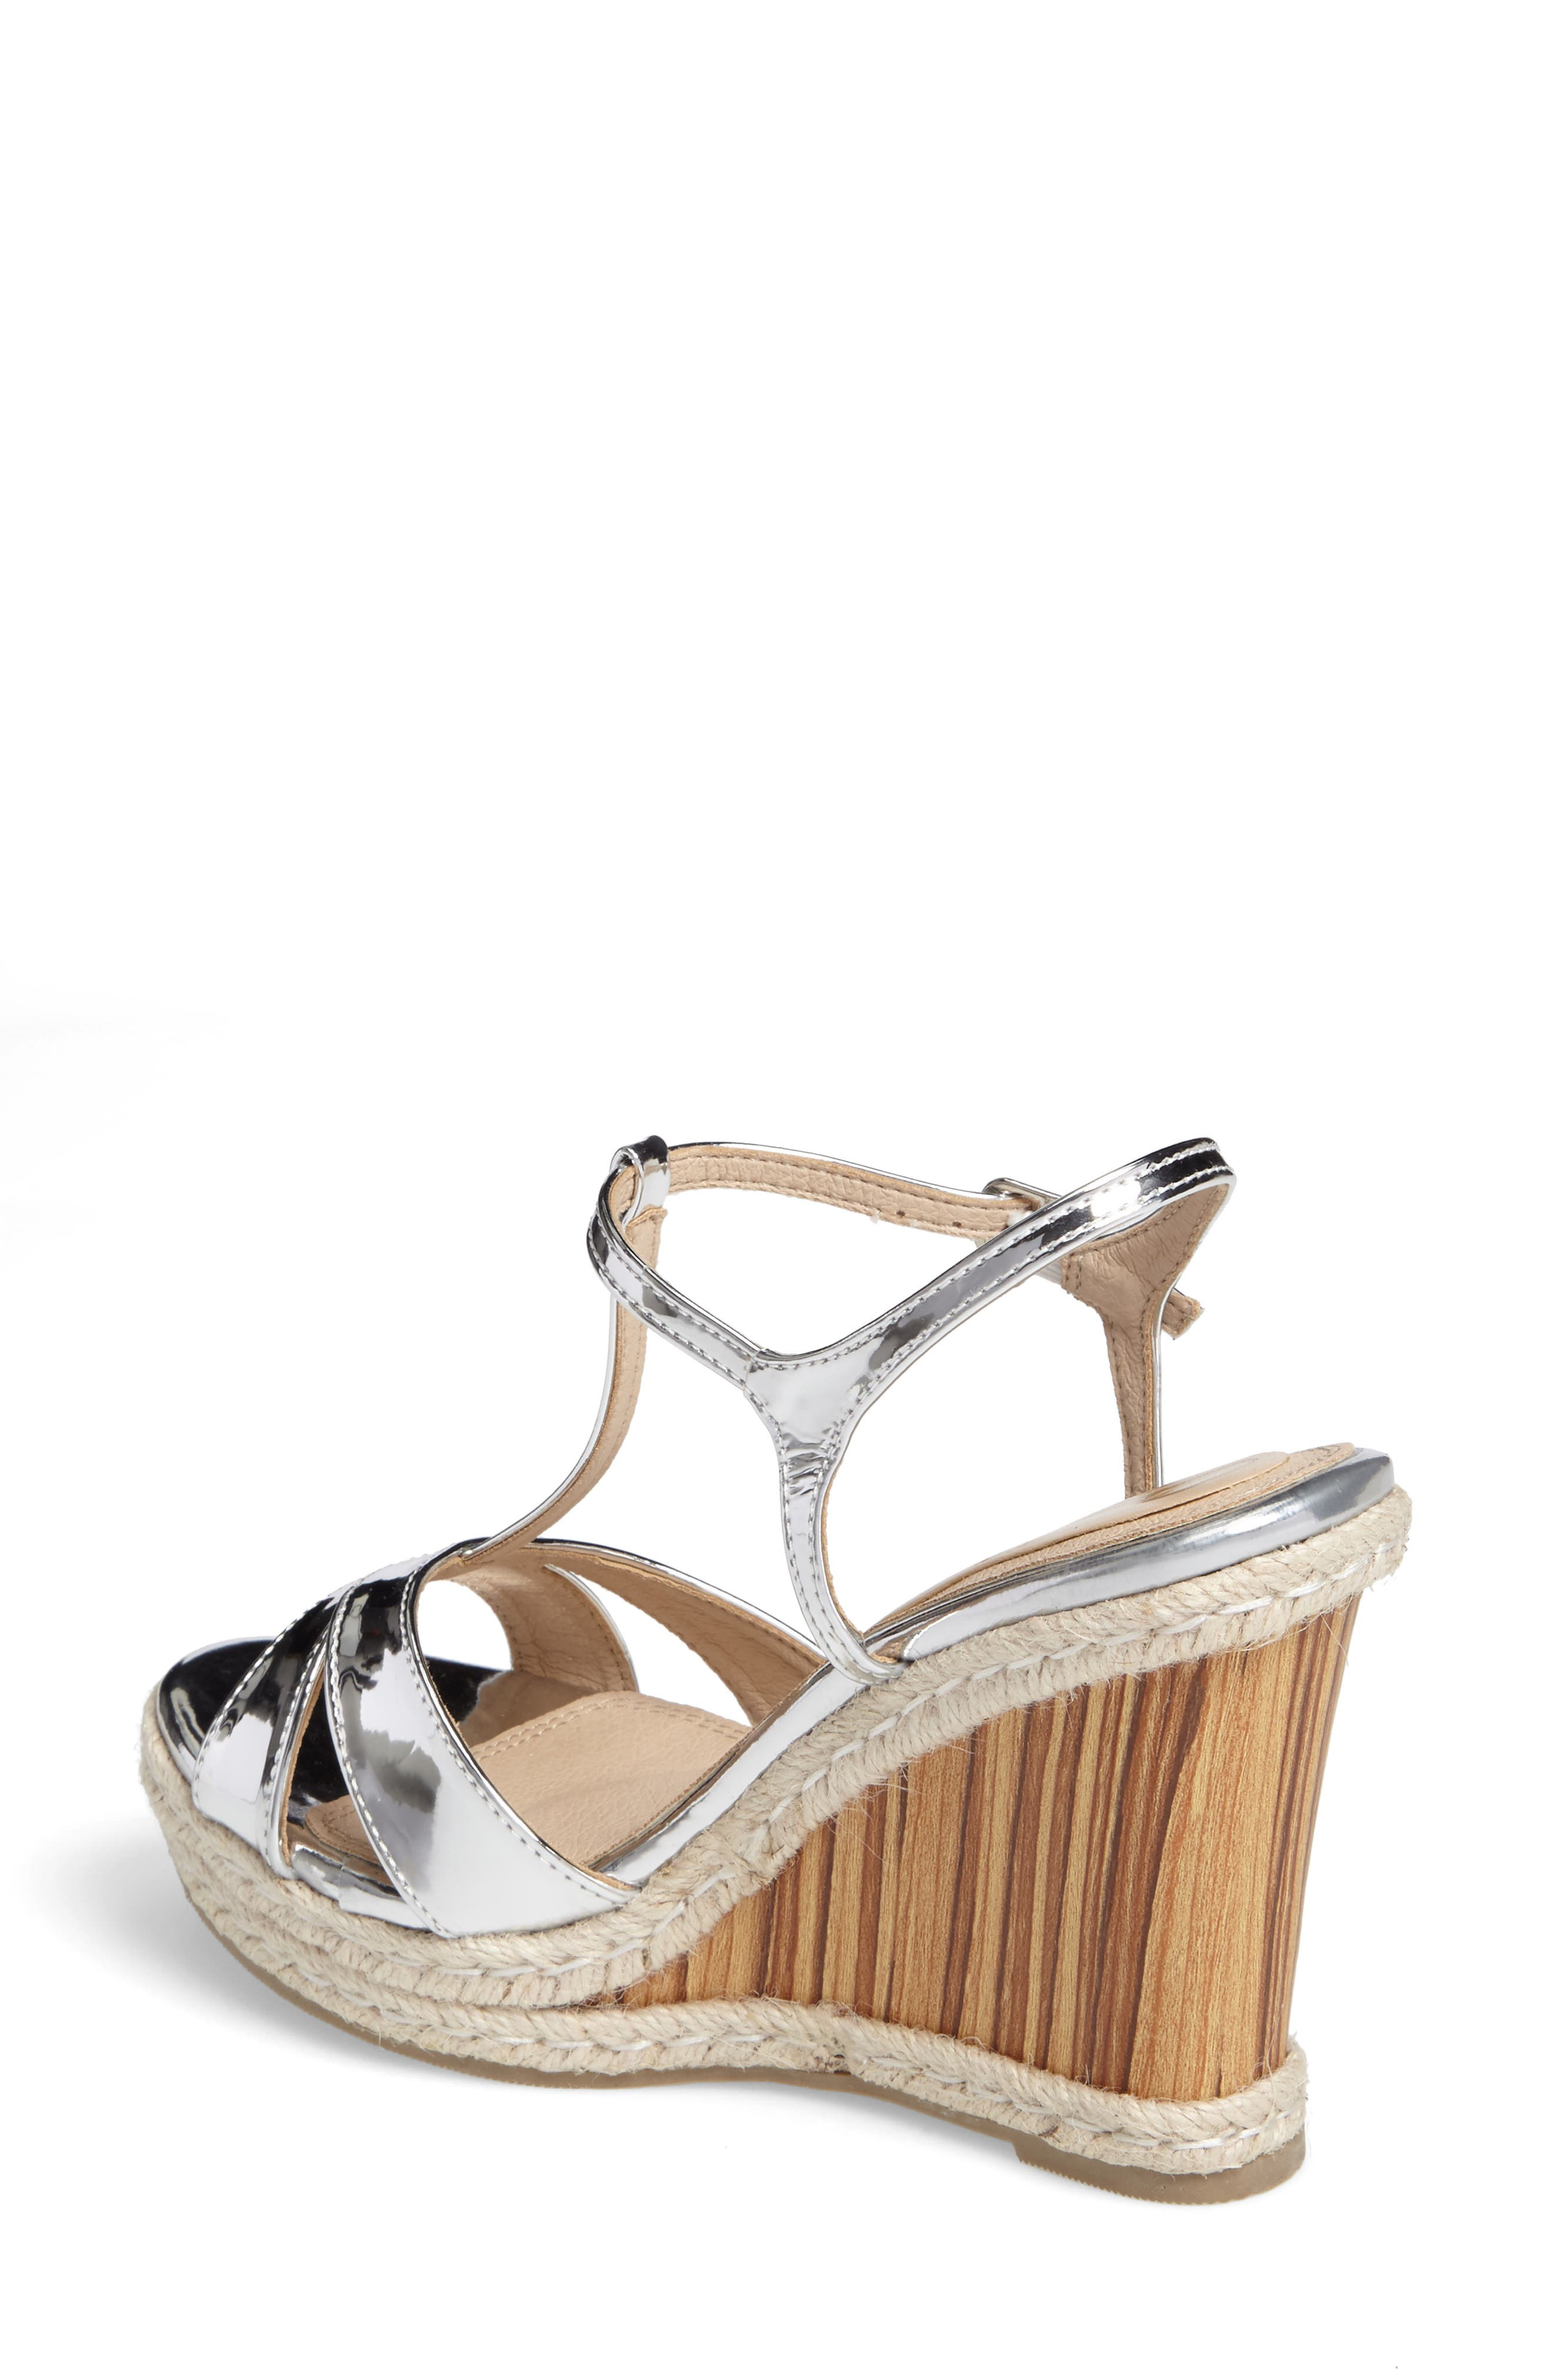 Alinna T-Strap Wedge Sandal,                             Alternate thumbnail 2, color,                             Silver Faux Leather